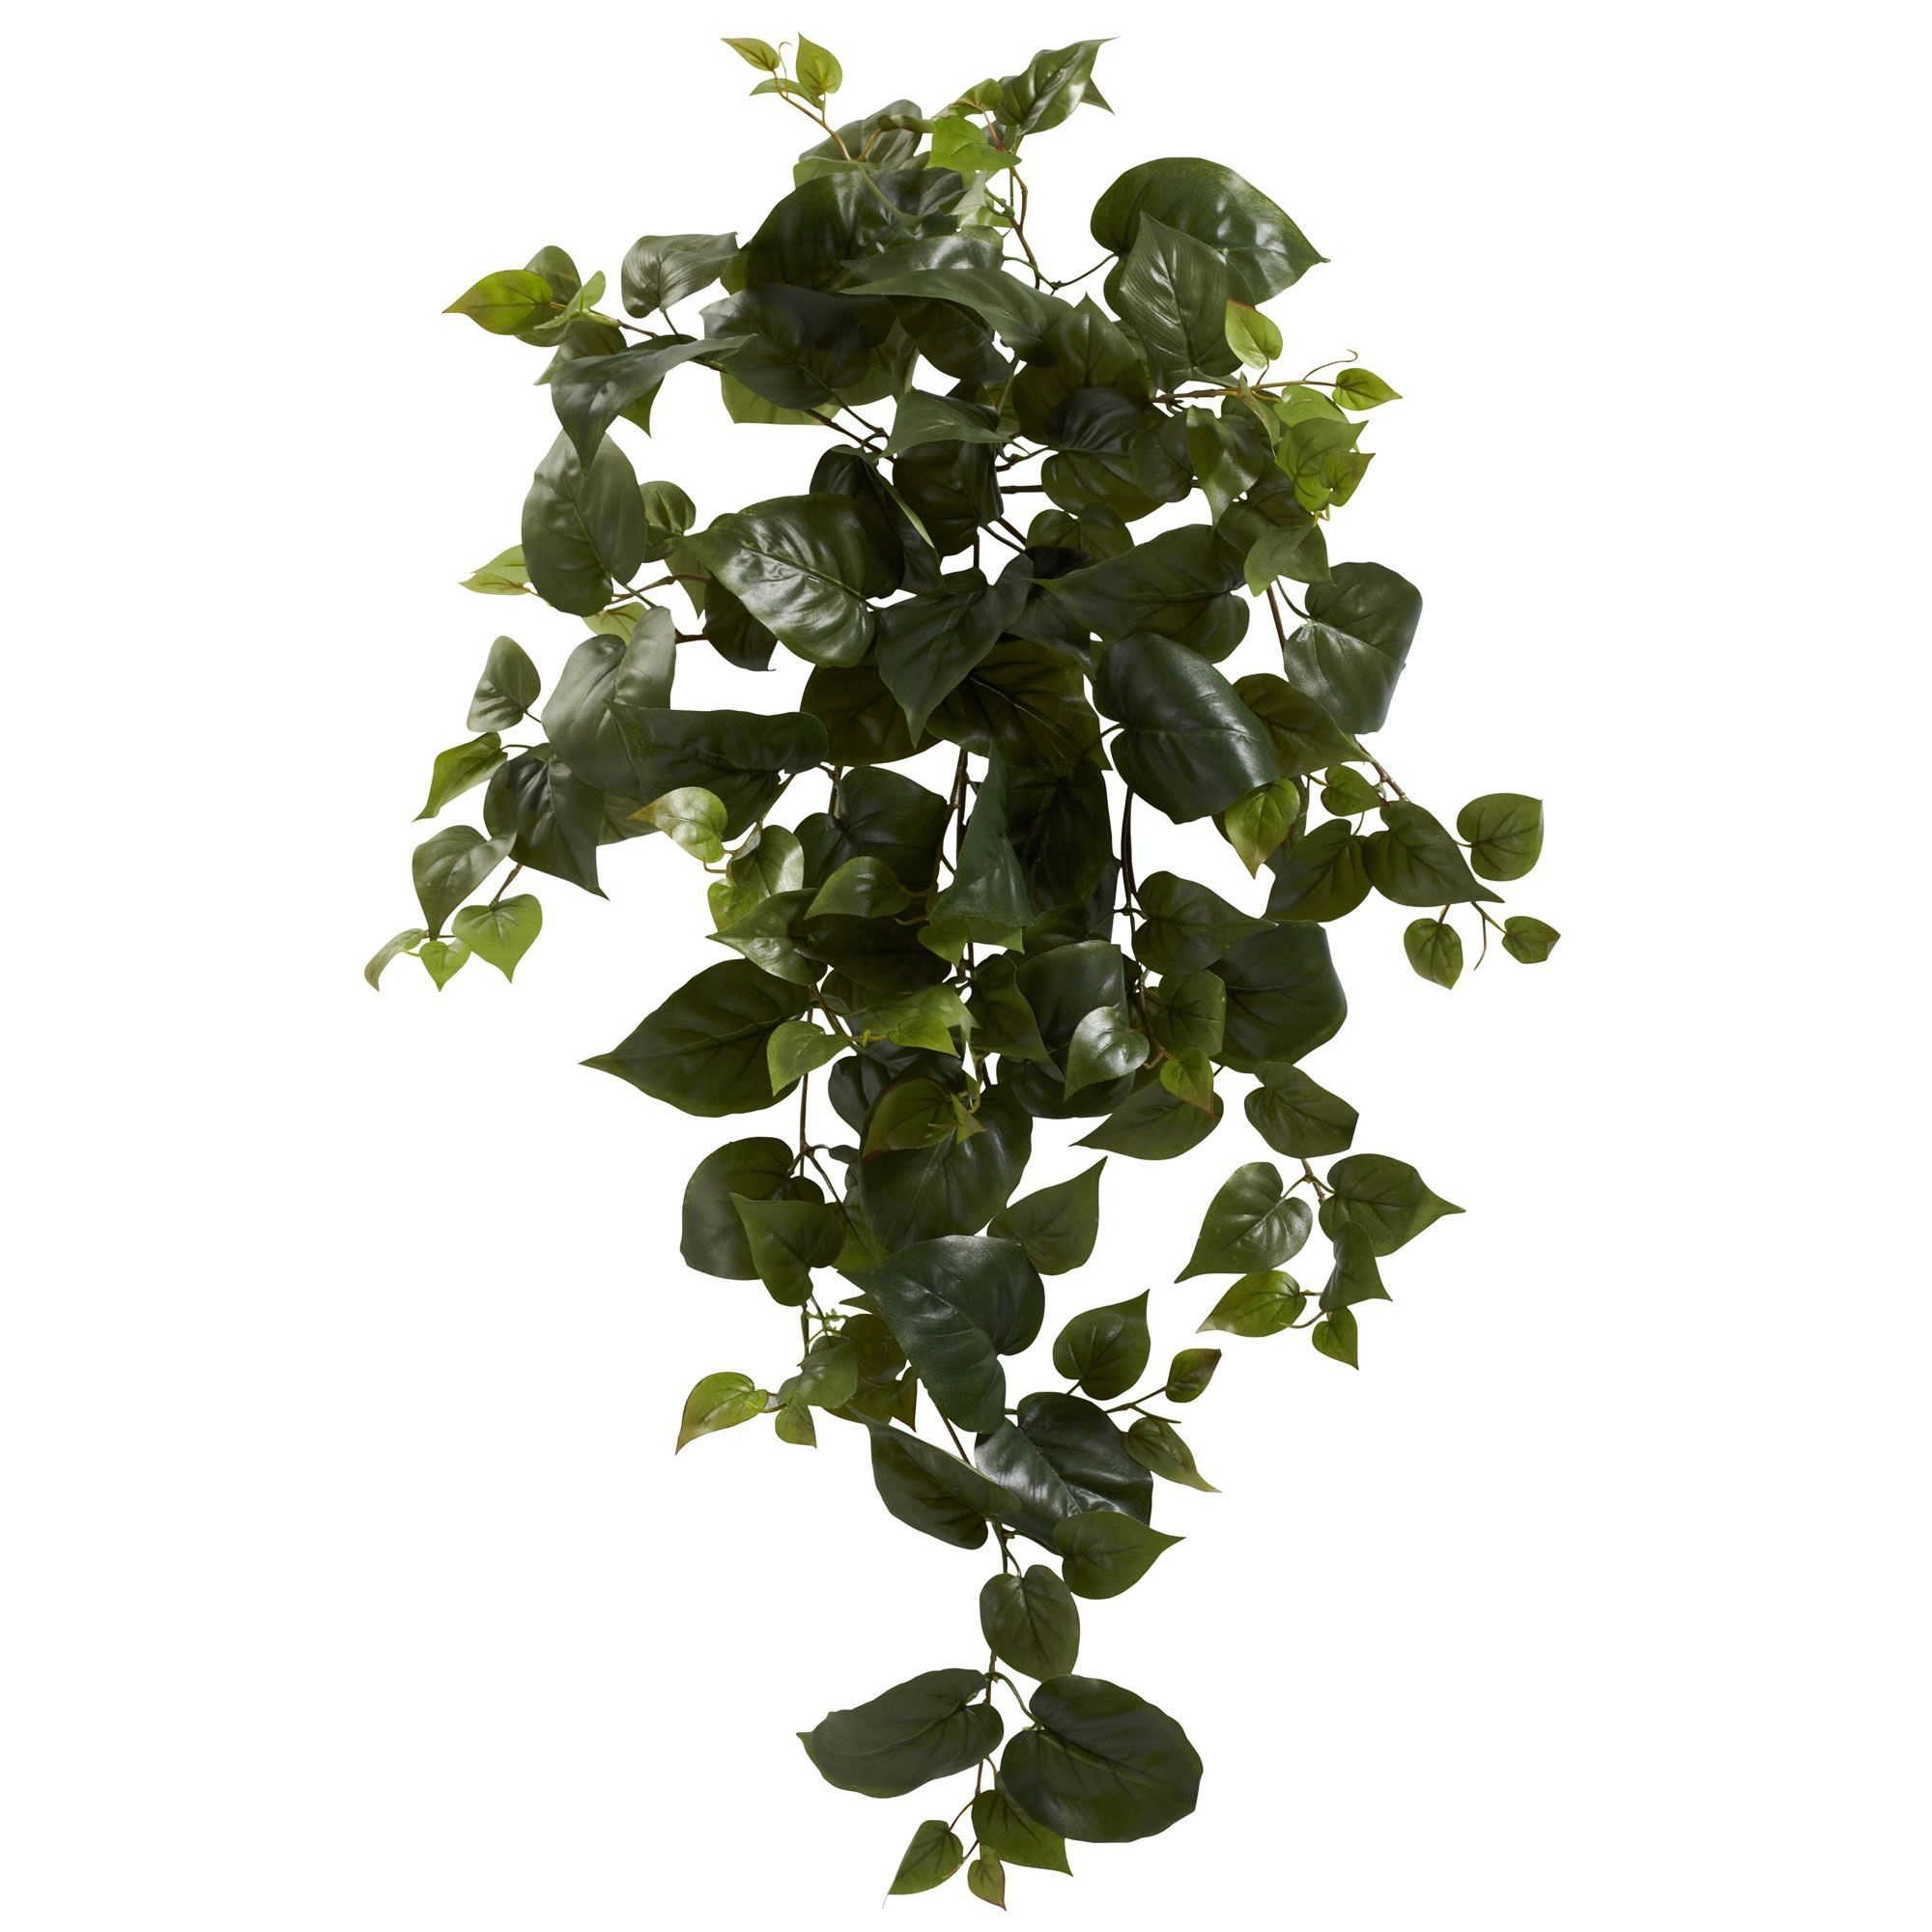 Many Small Delicate Green Leaves Combine To Create A 34 Inch Curtain Of Foliage In This Artificial P Hanging Plants Artificial Plants Artificial Plants Indoor